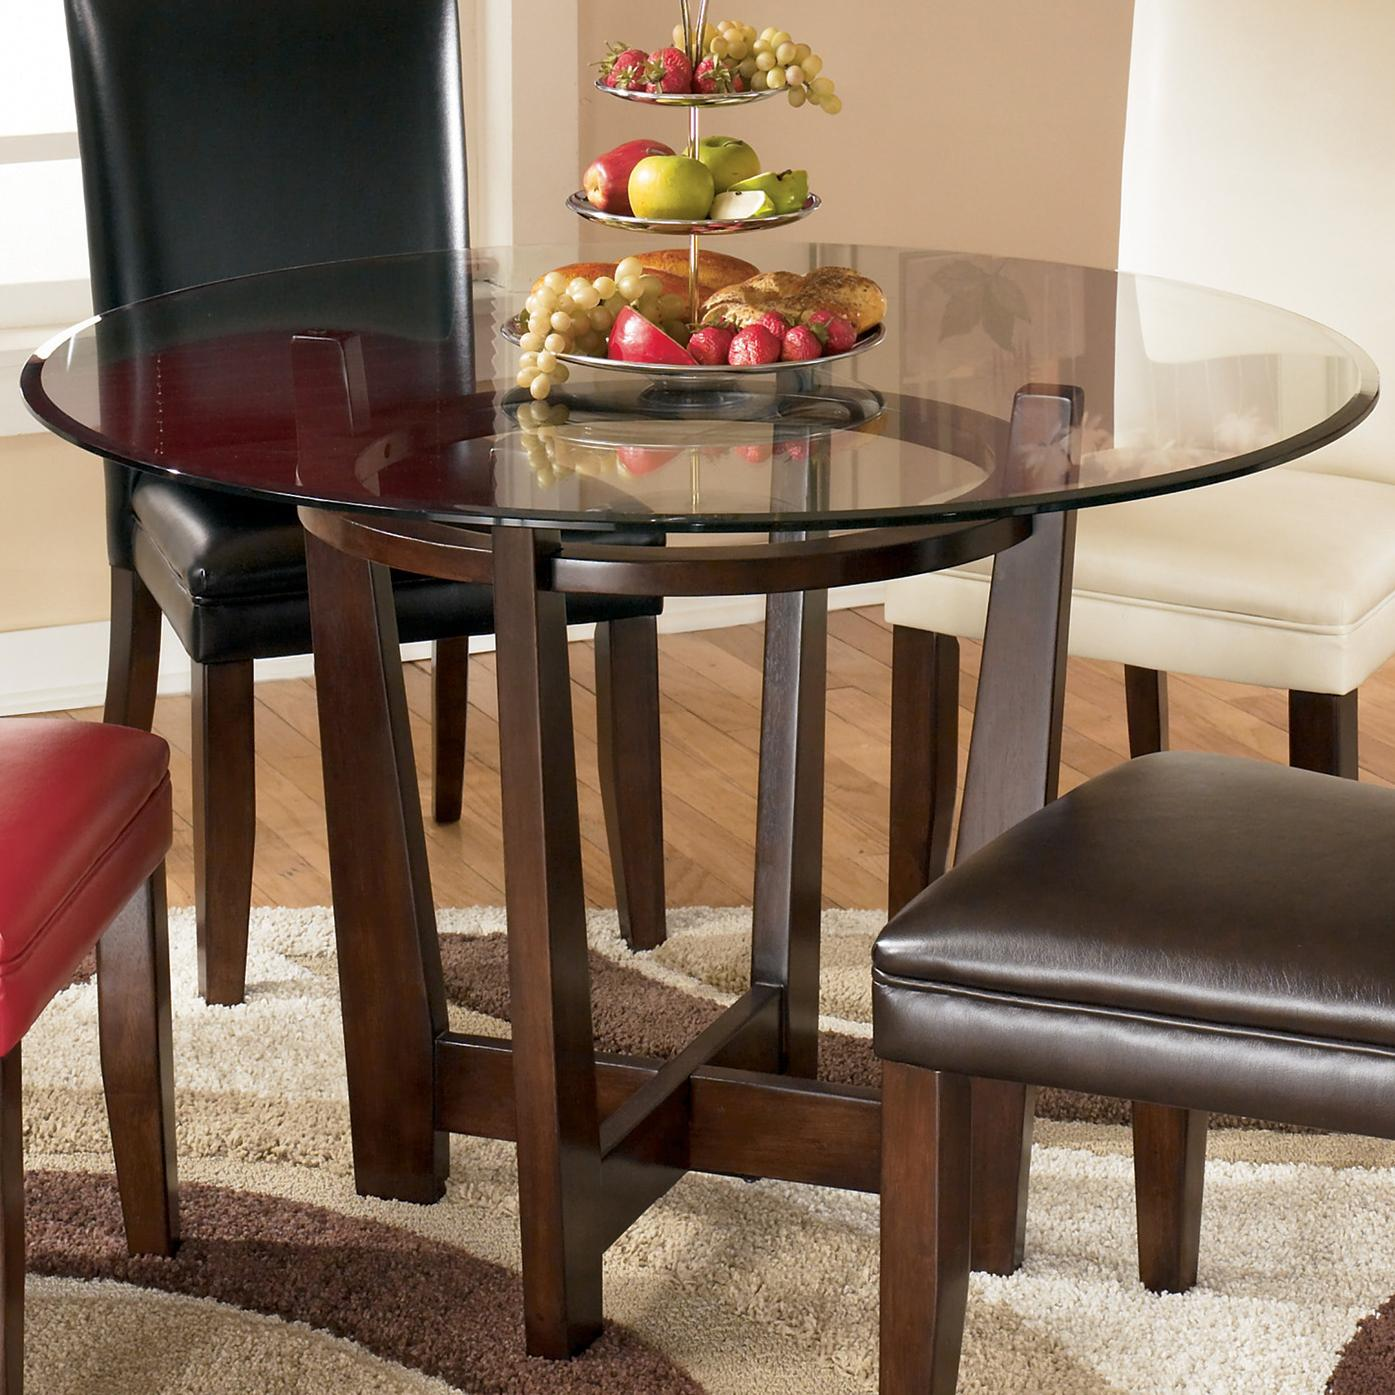 ashley furniture kitchen table long island signature design by charrell d357 15 round glass